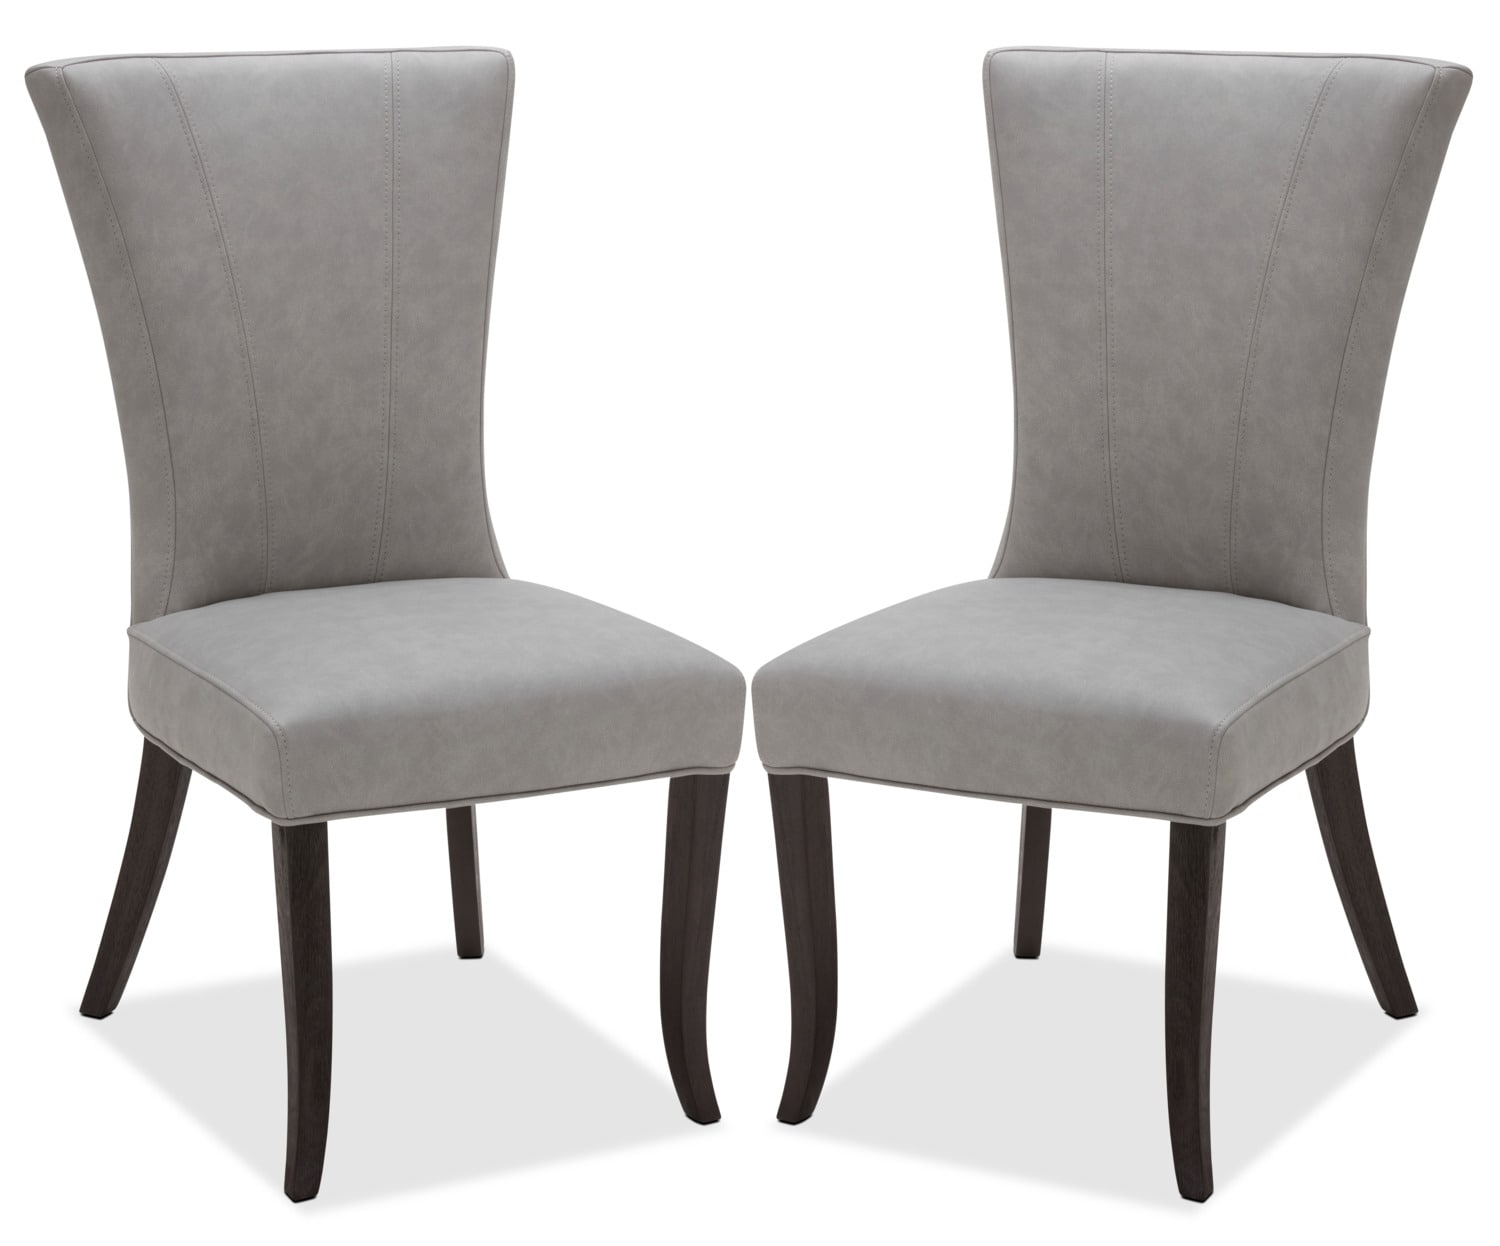 Taupe Dining Chairs Bree Dining Chair Set Of 2 Taupe The Brick